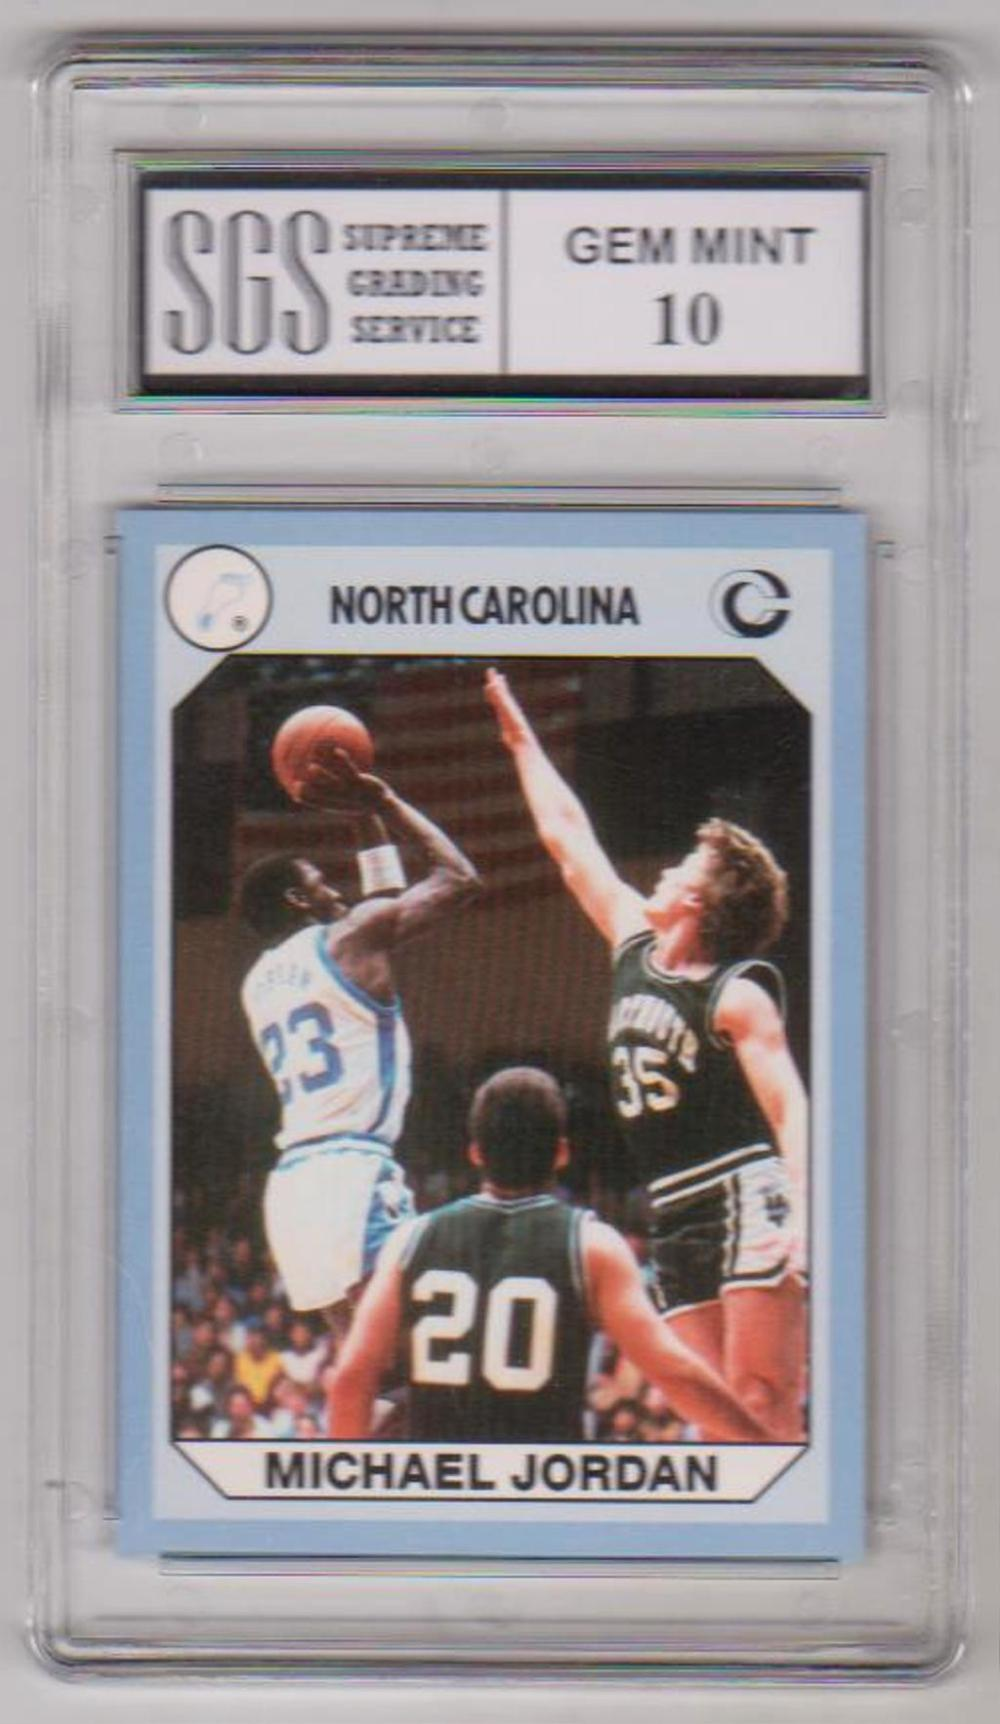 Graded Gem Mint 10 Michael Jordan 1990 North Carolina #61 Card